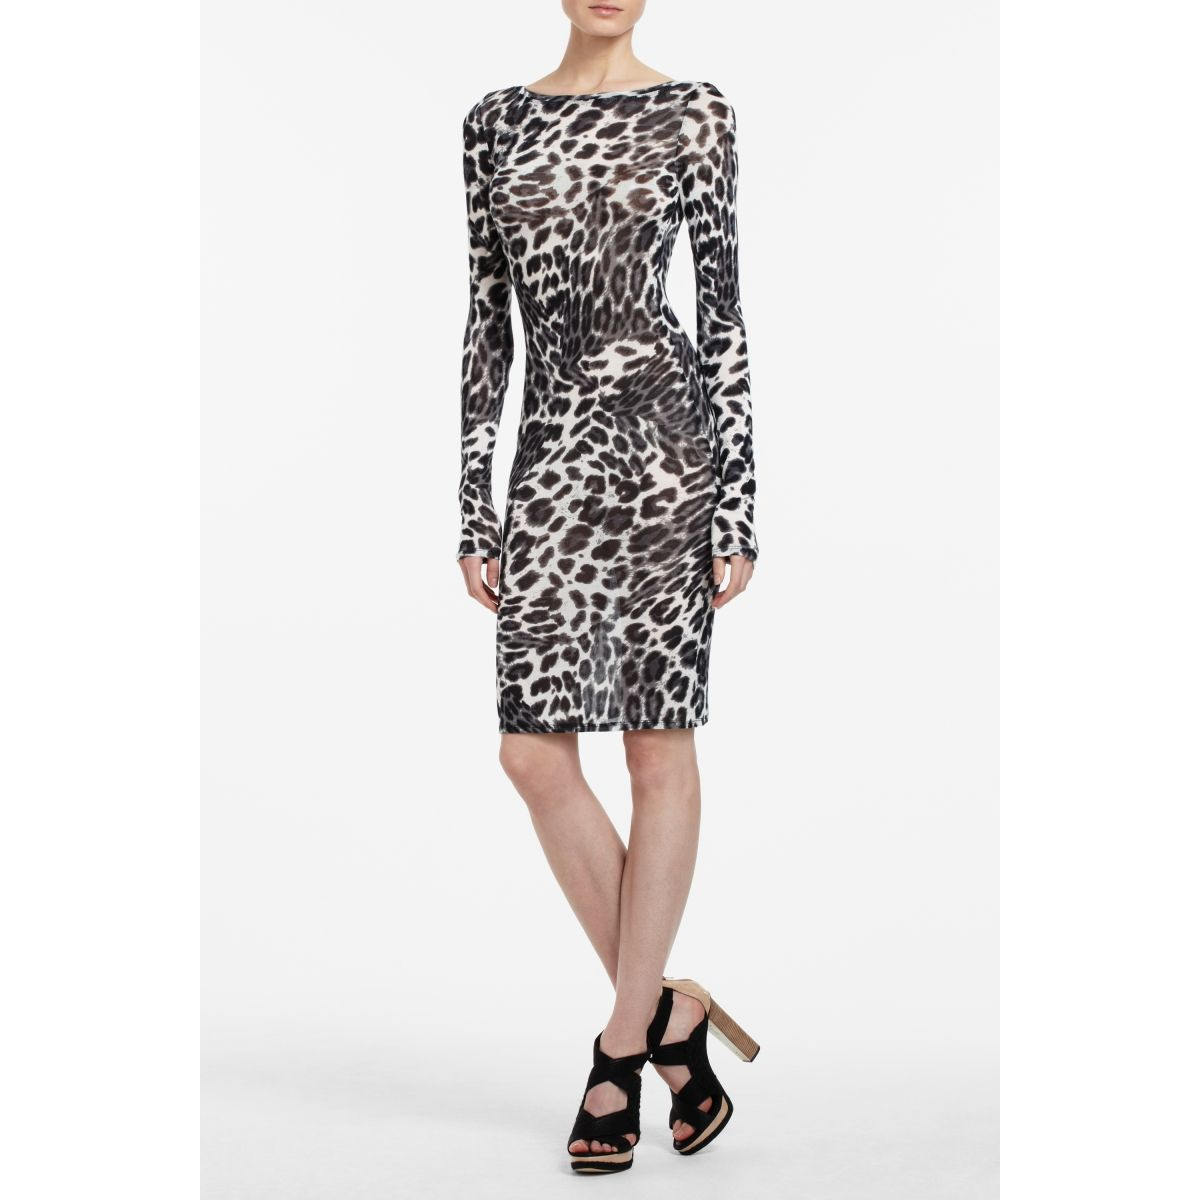 BCBG Felicia Cheetah Dress